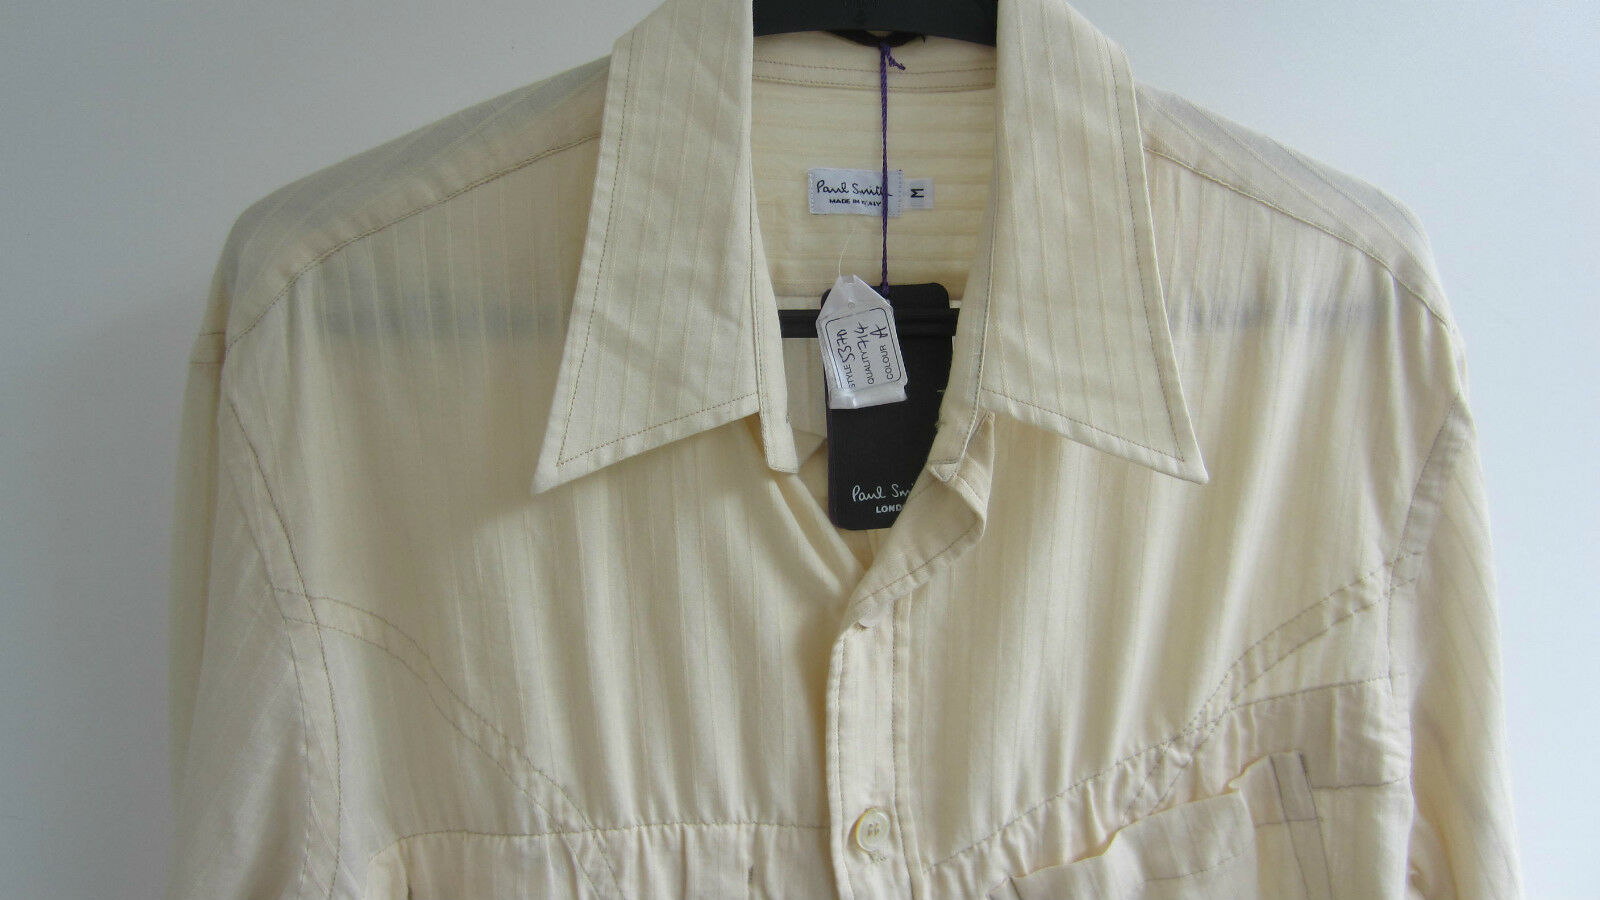 Paul Smith  MAINLINE  Cream Stripe Cotton Shirt P2P 20.5  Size M